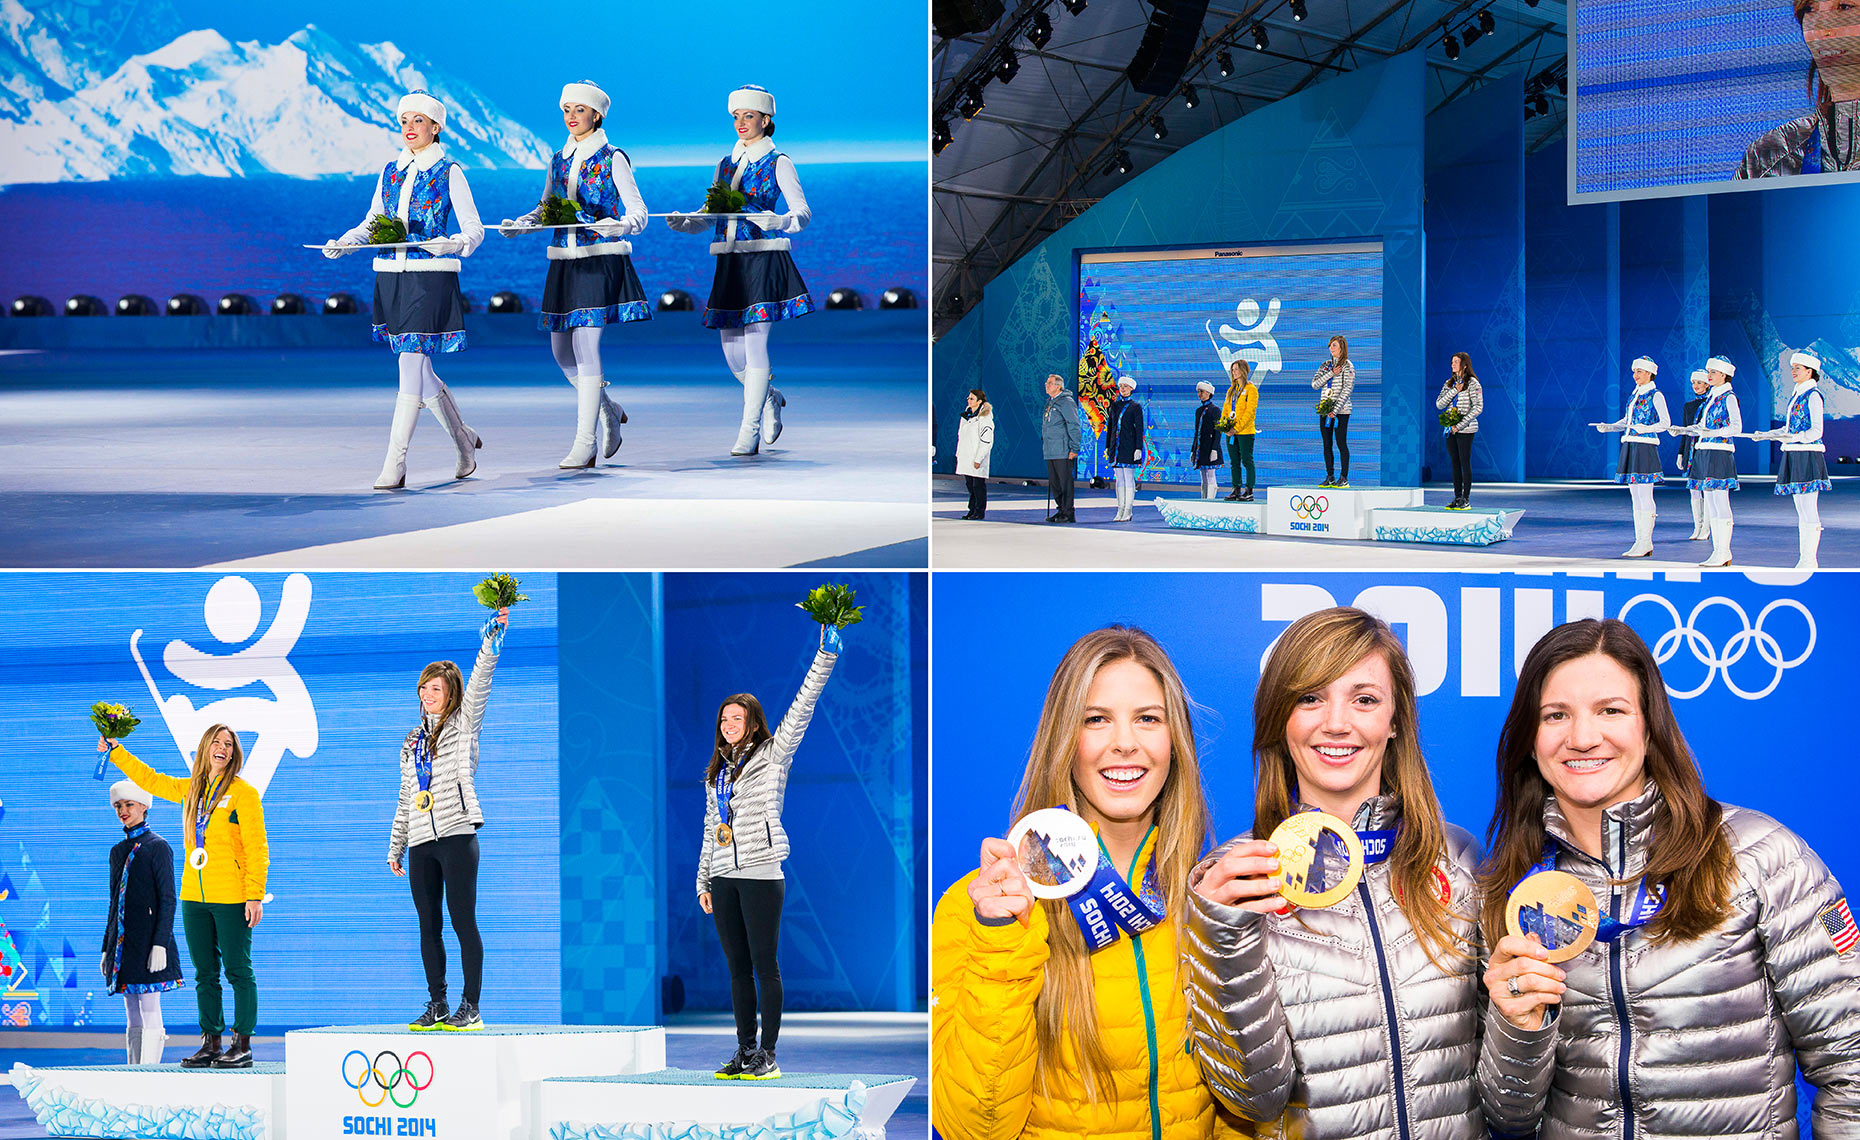 32_Sochi_Olympics_Kaitlyn_Farrington_Torah_Bright_Kelly_Clark_Russia_Chris_Wellhausen